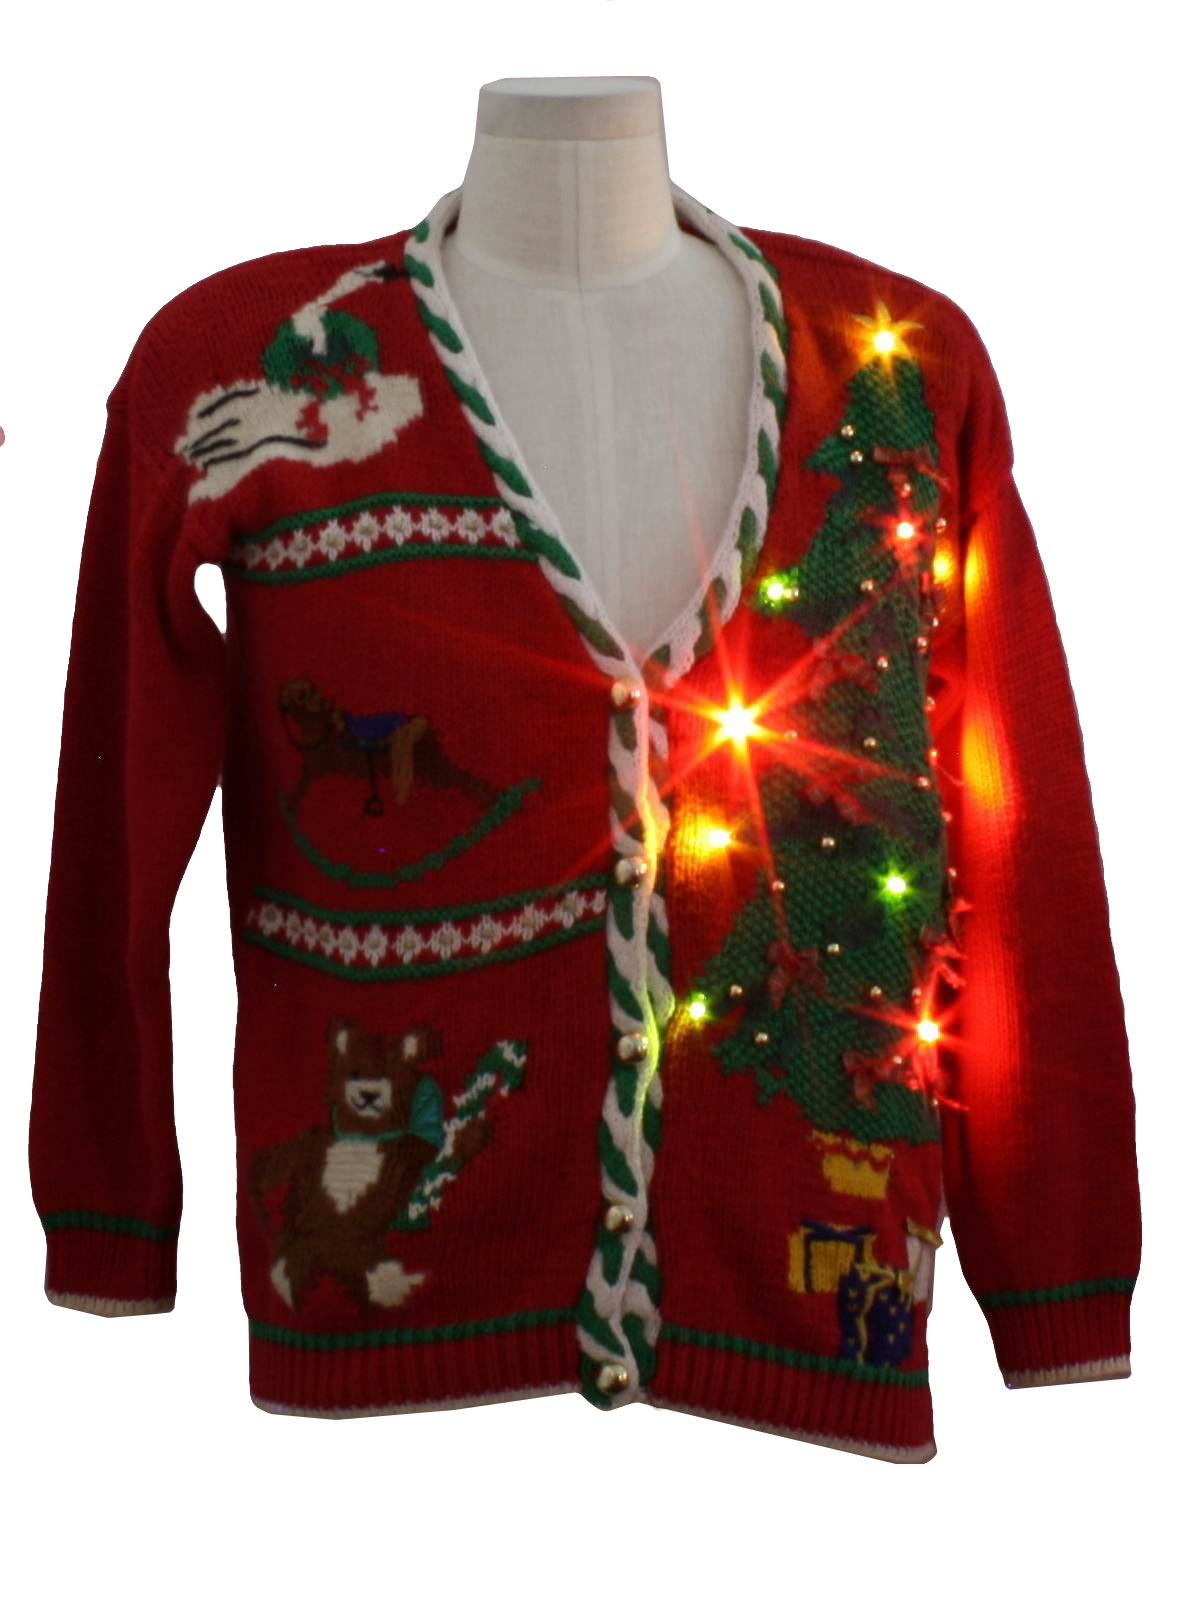 ... Nordstrom Town Square Unisex Lightup Ugly Christmas Cardigan Sweater